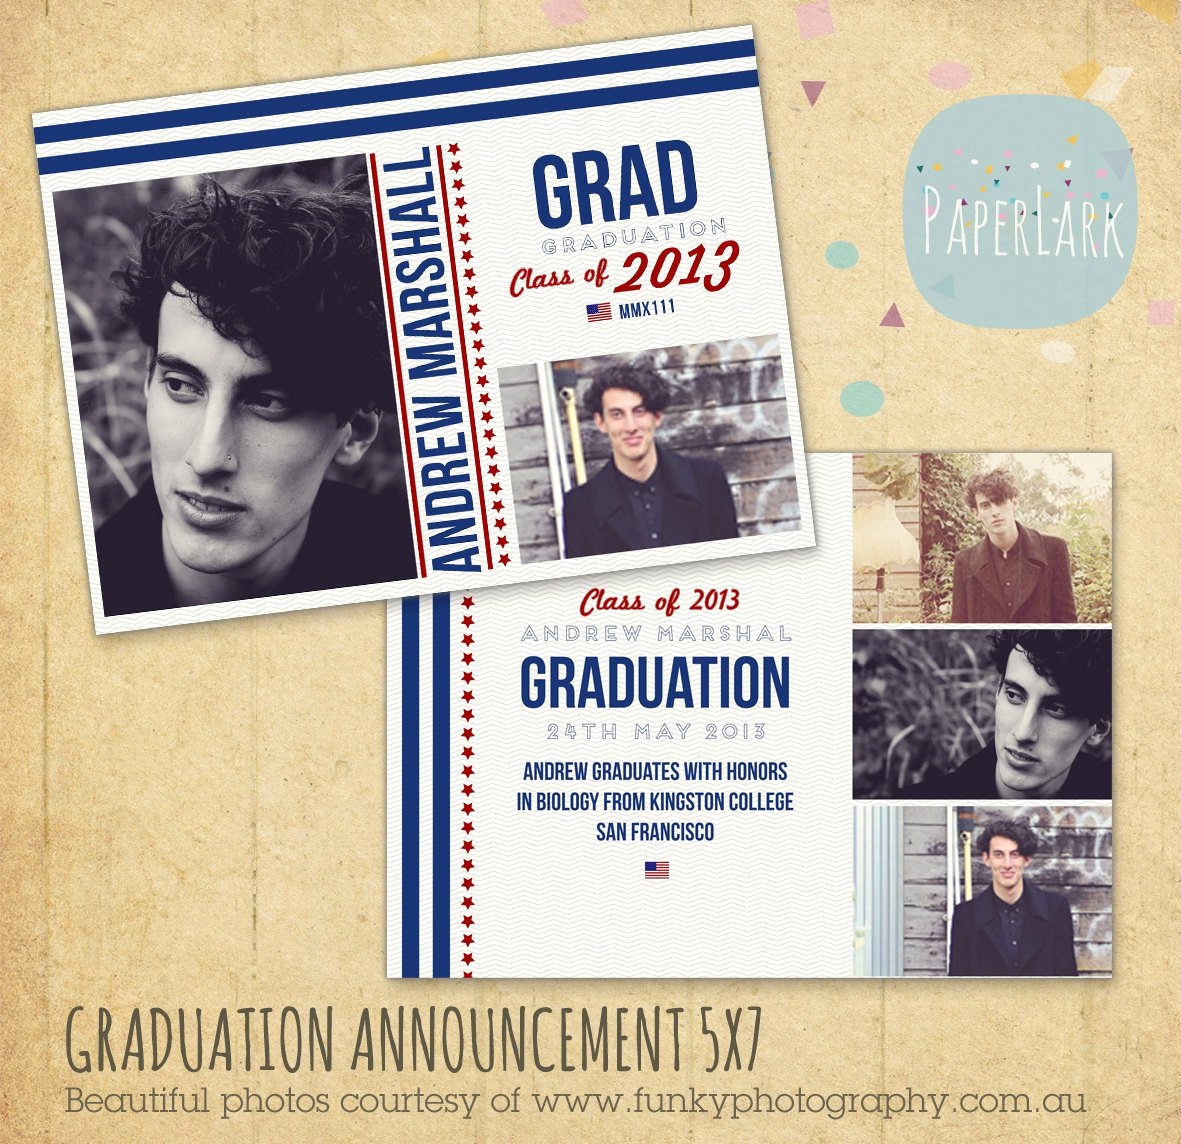 Create Graduation Invitation Online Elegant Design Your Own Grad Invitations